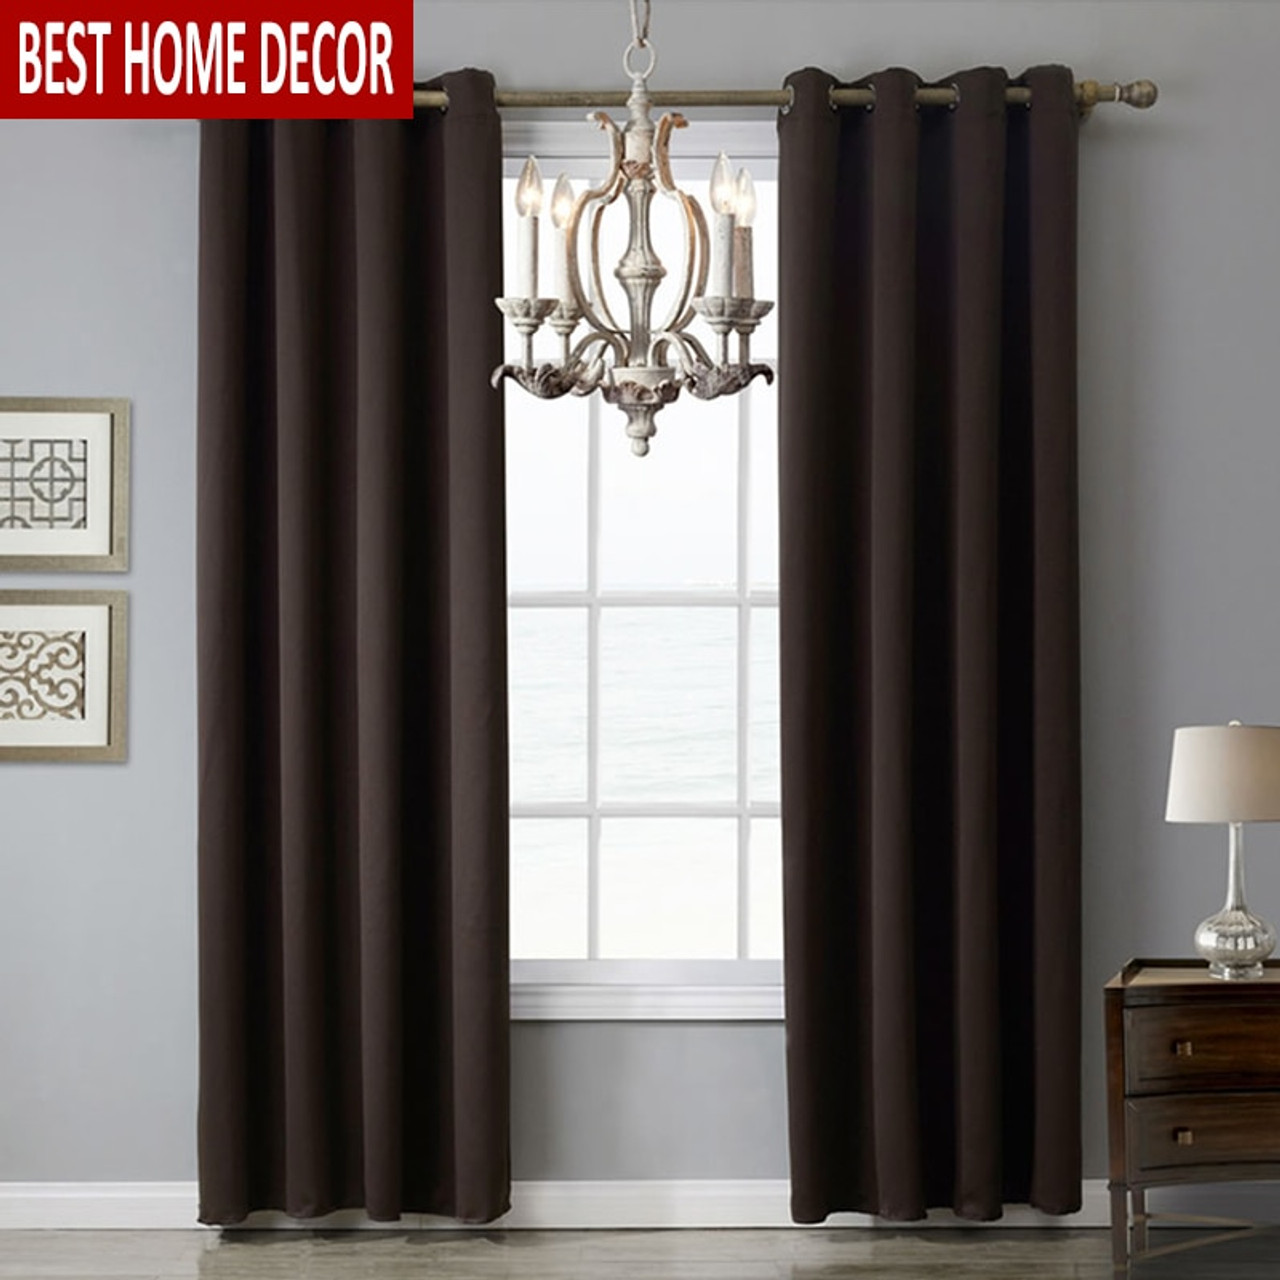 1 Piece Modern Blackout Curtains For Window 6 Colors 8 Sizes